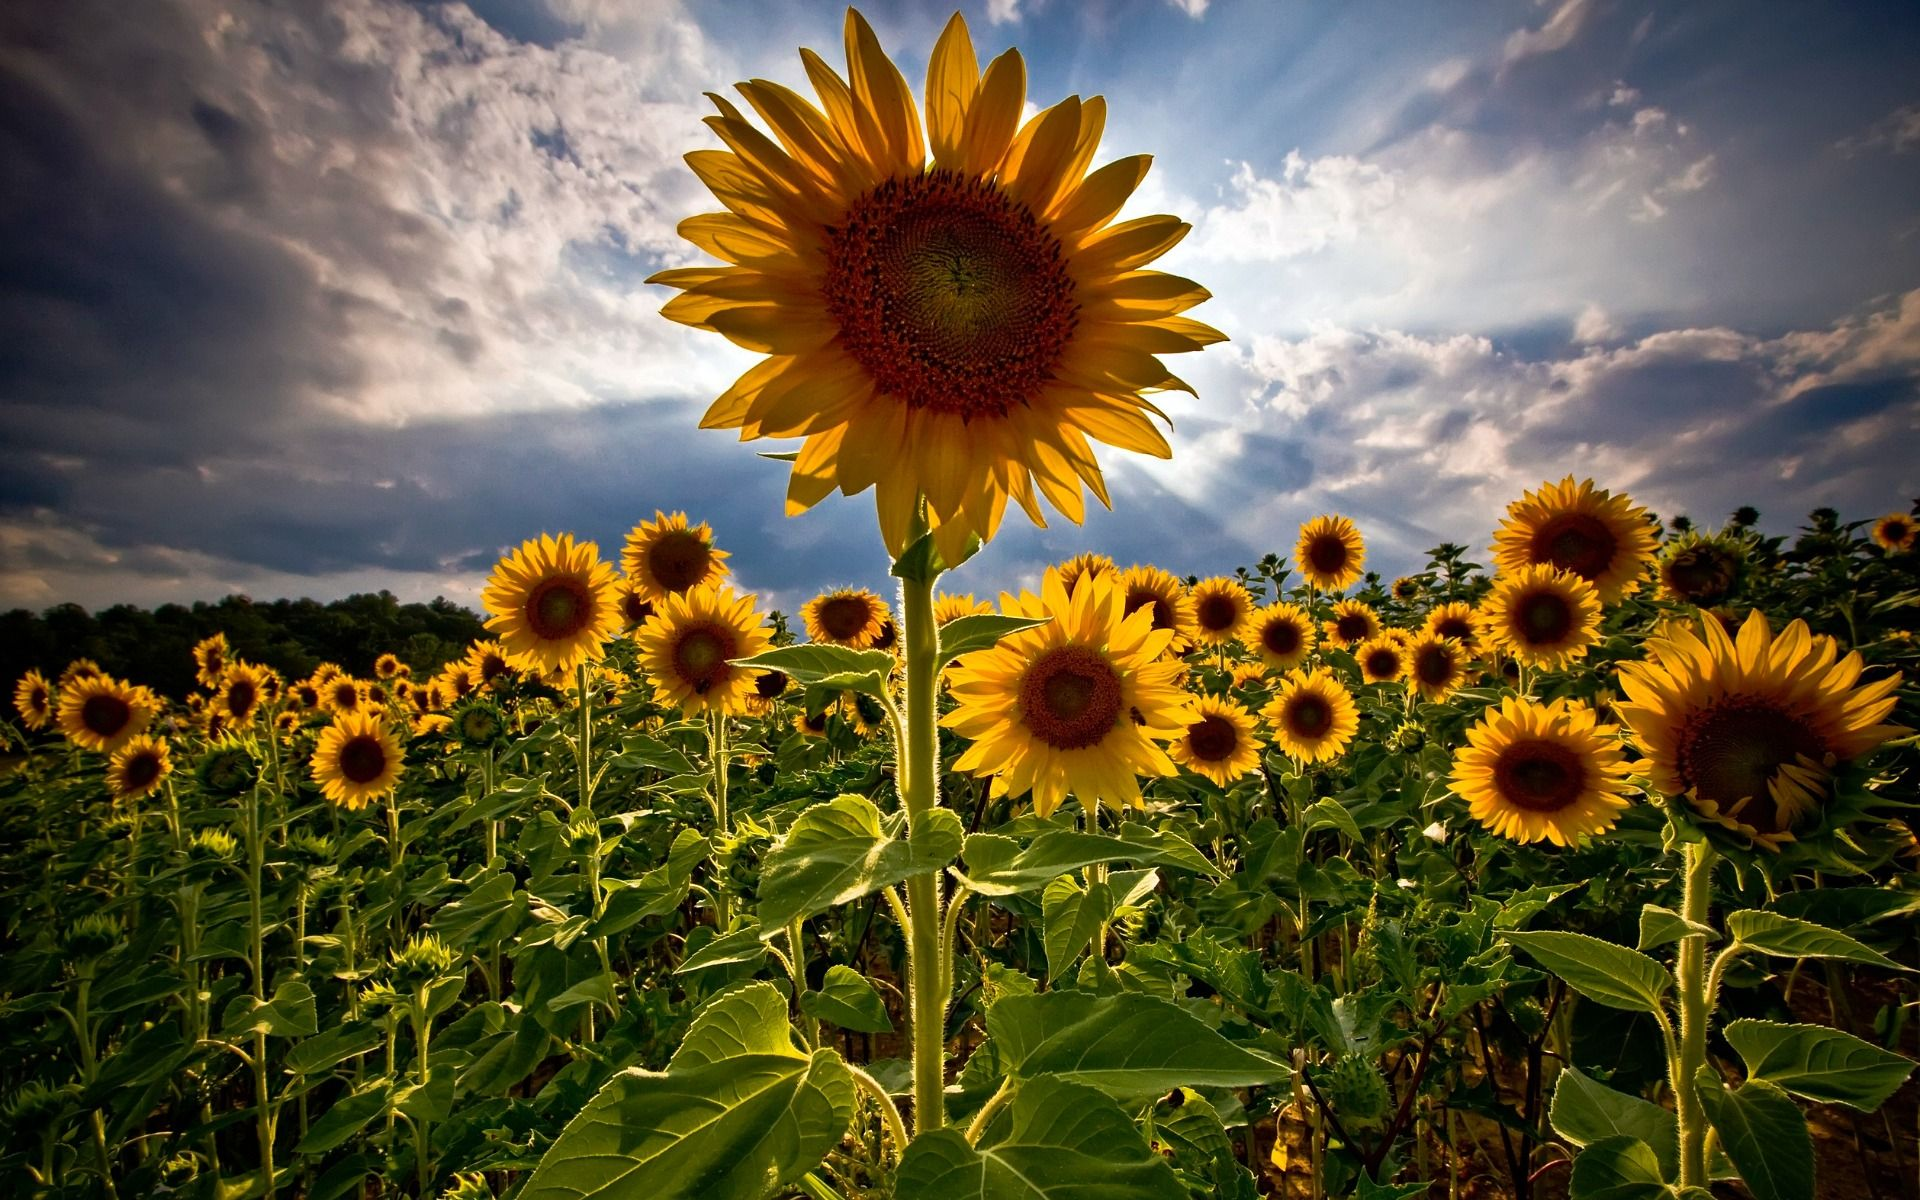 Super Awesomely Hi Res Pic Of Sunflowers Makes A Good Desktop Wallpaper Flower Background Images Sunflower Wallpaper Flower Wallpaper